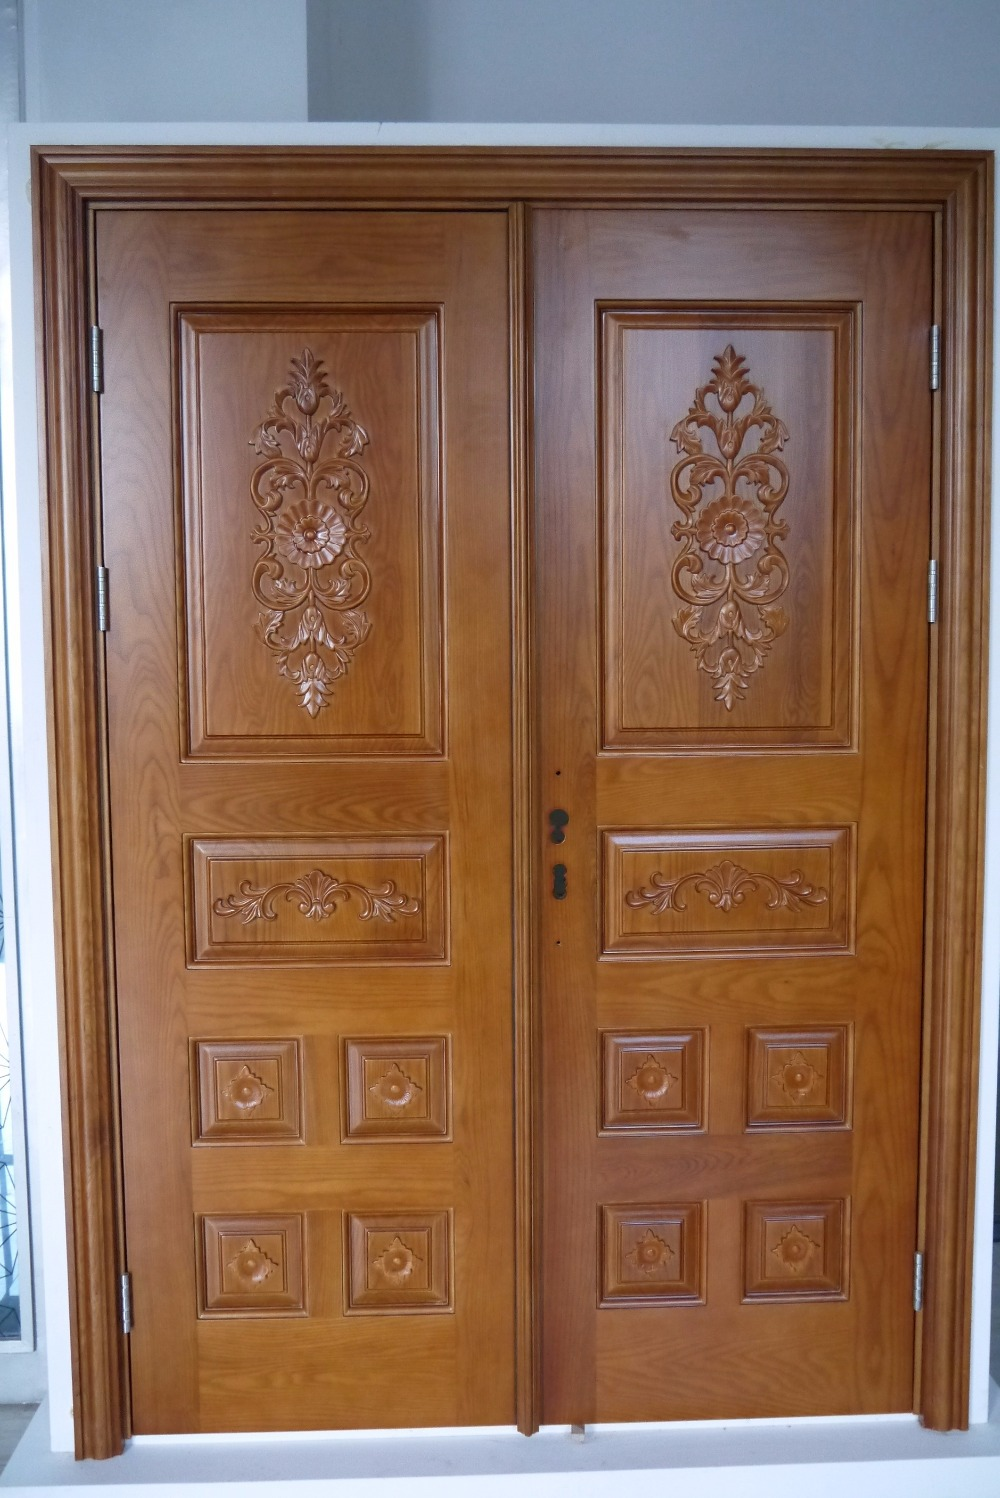 Prehung exterior double door 96 wood mahogany 2 panel for Wooden door pattern